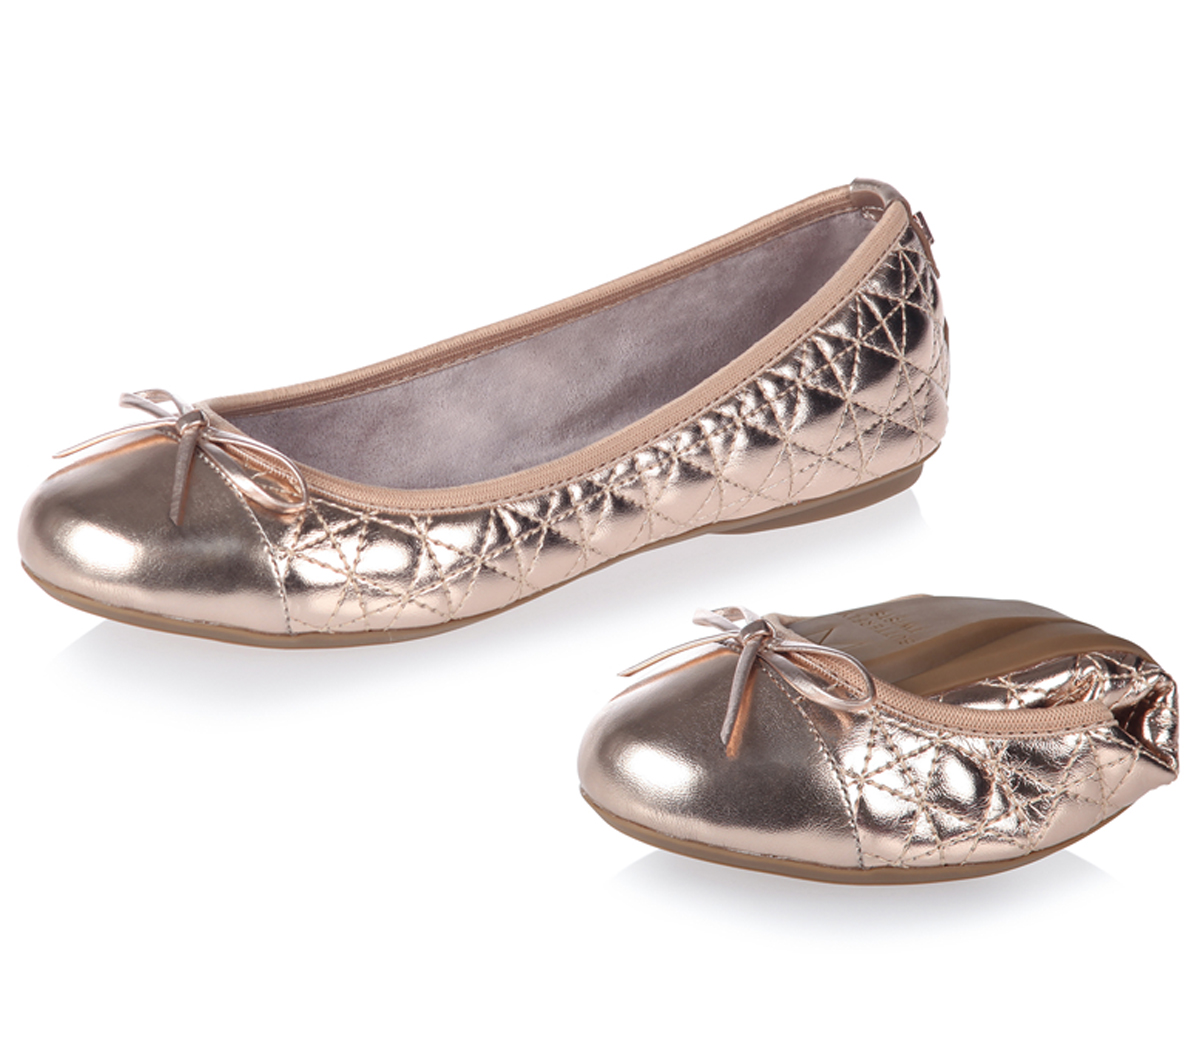 45f728c51dbd Womens Butterfly Twists Quilted Olivia 2 Pumps Rose Gold Flats